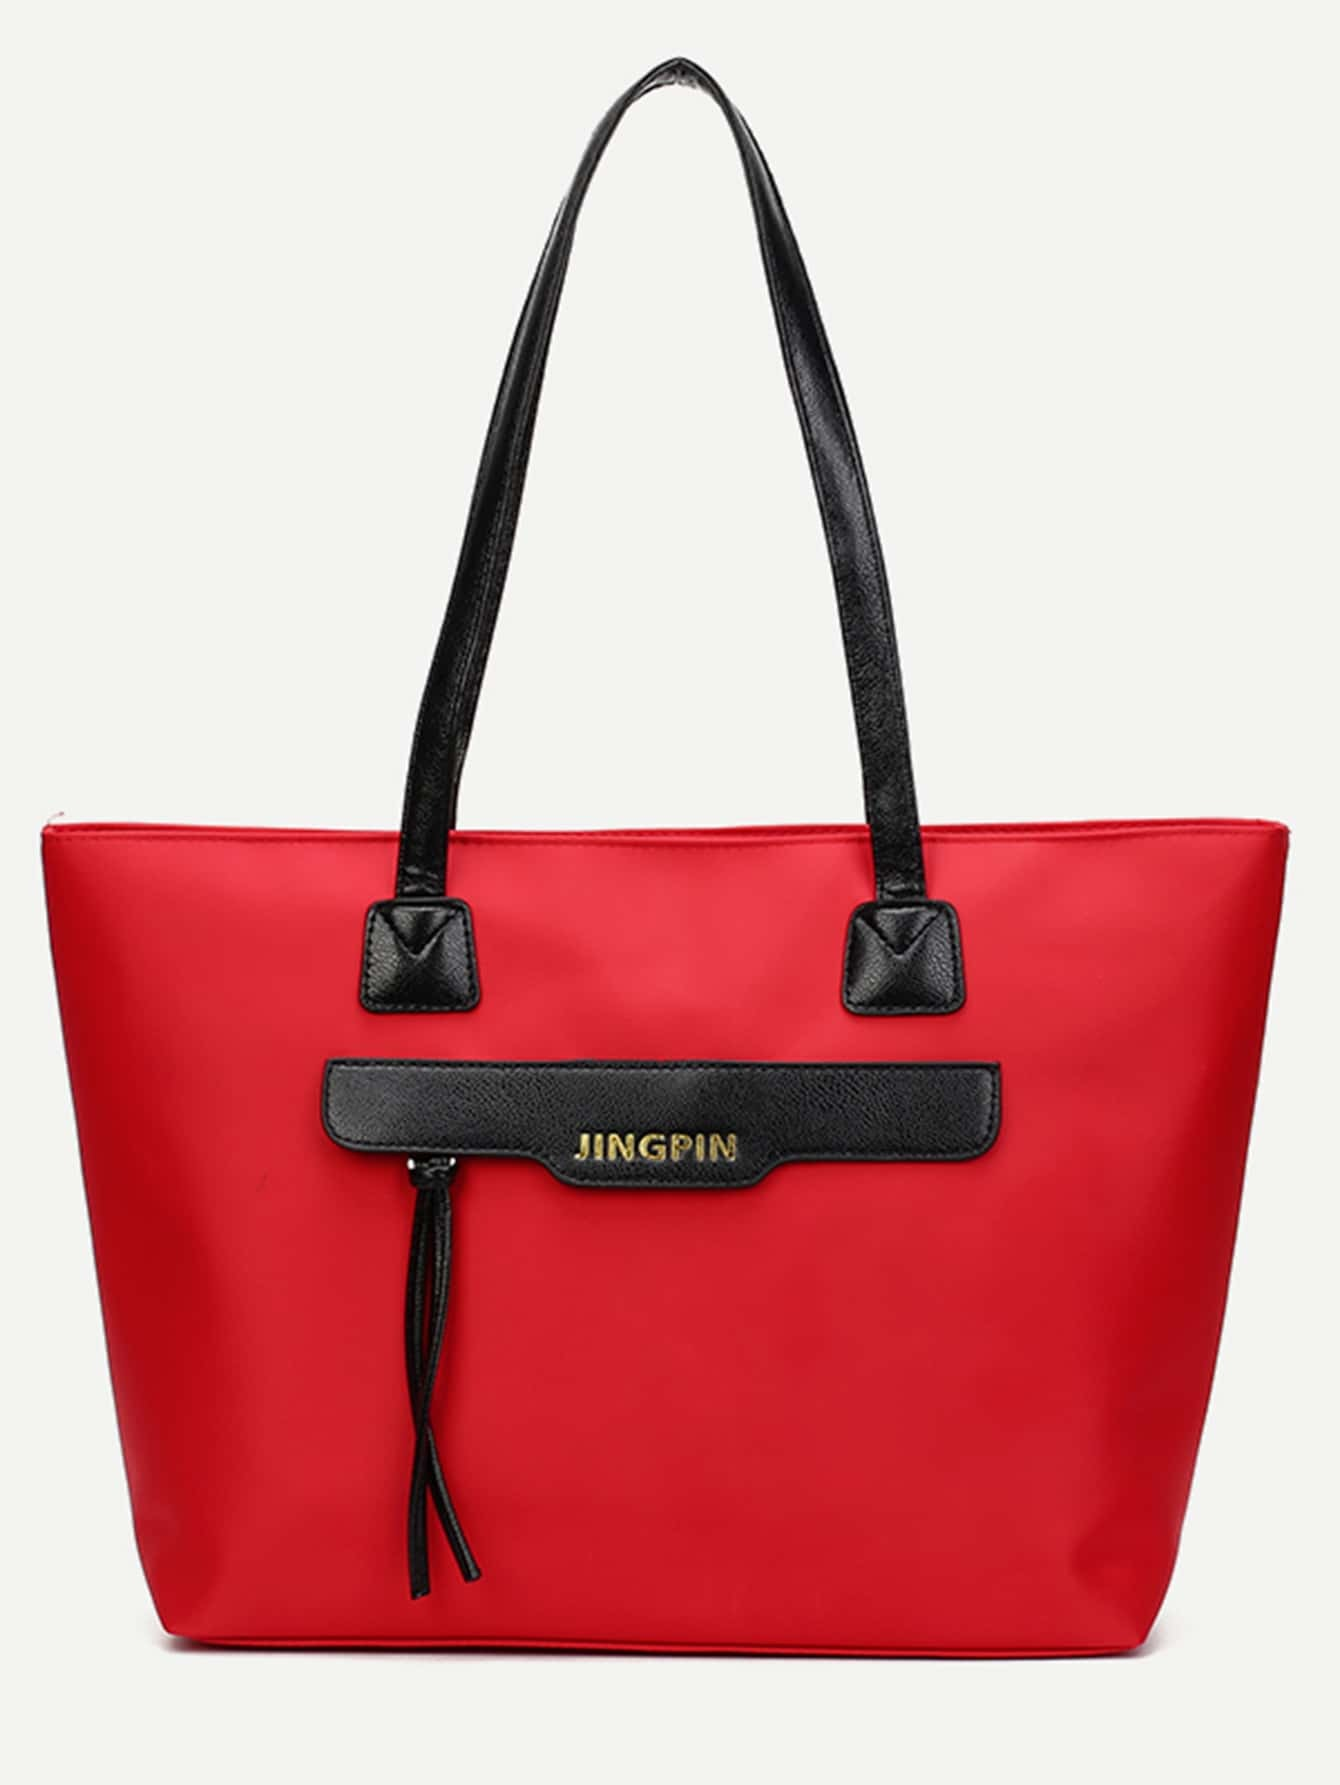 Red Zip Front Nylon Tote BagRed Zip Front Nylon Tote Bag<br><br>color: Red<br>size: None